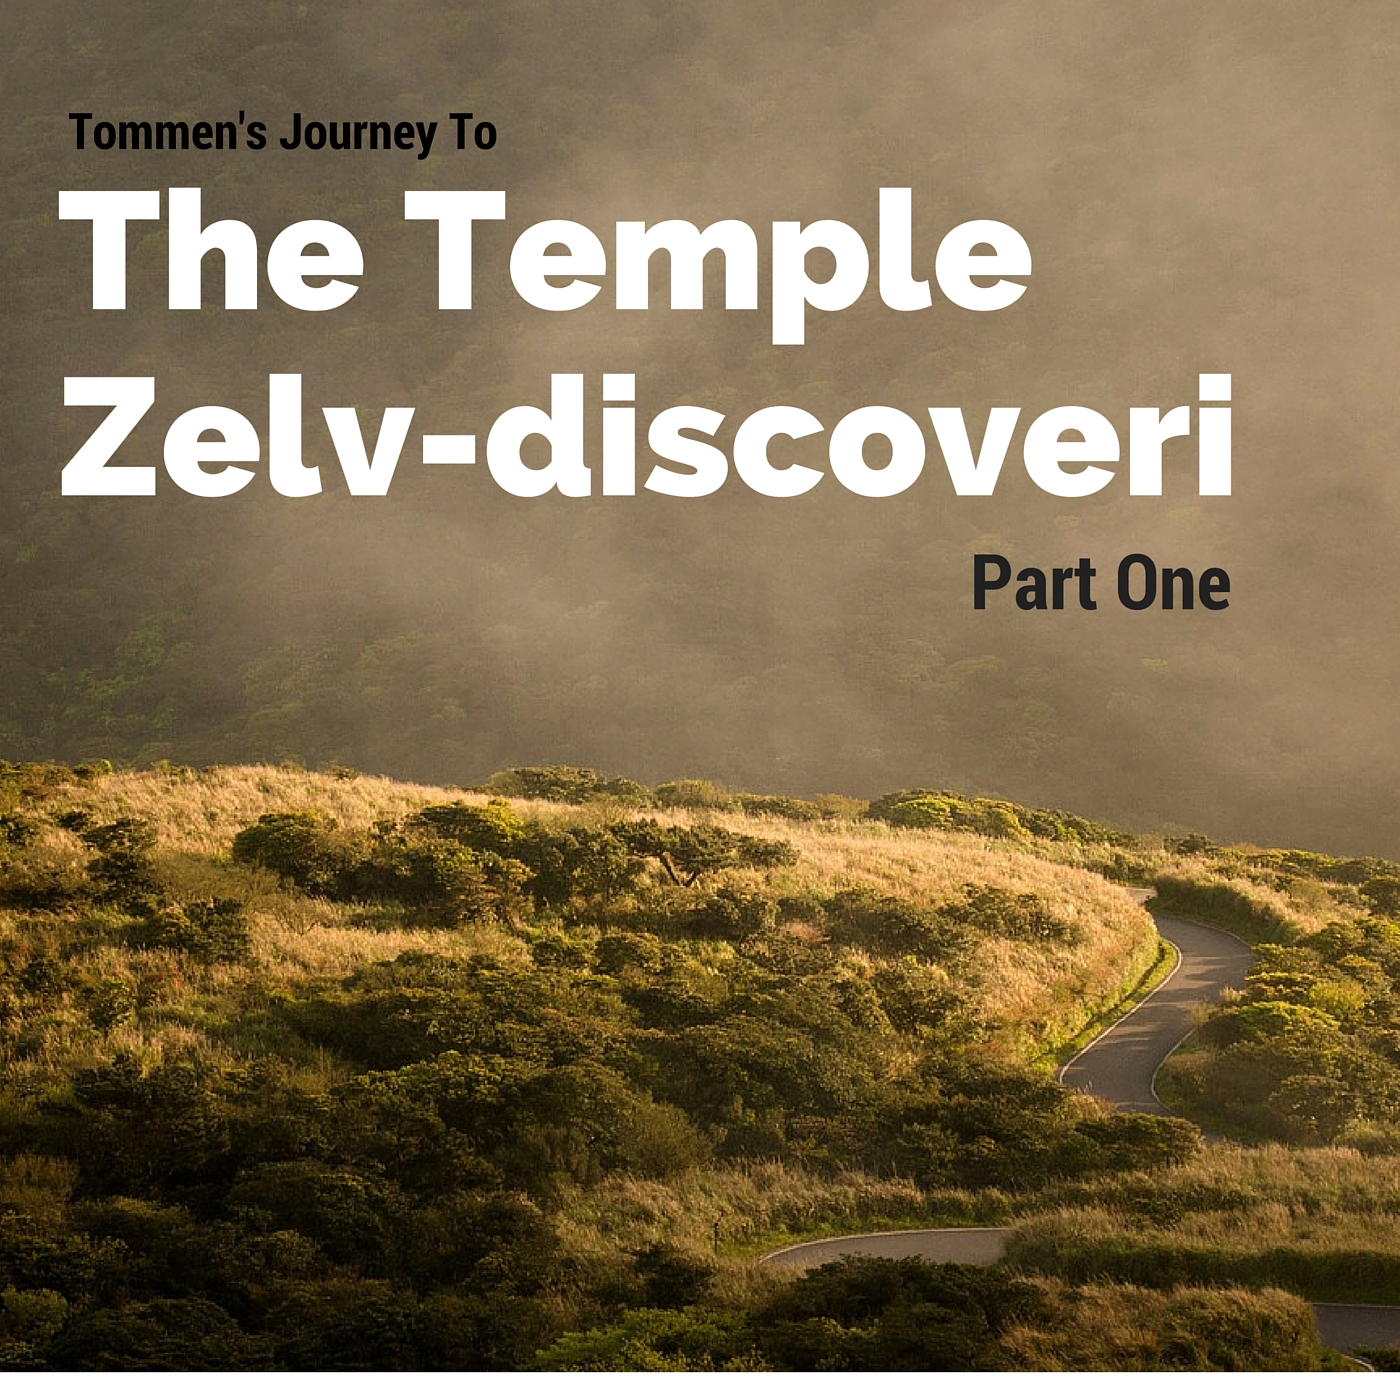 Tommen's Journey to Zelv Discoveri Part One